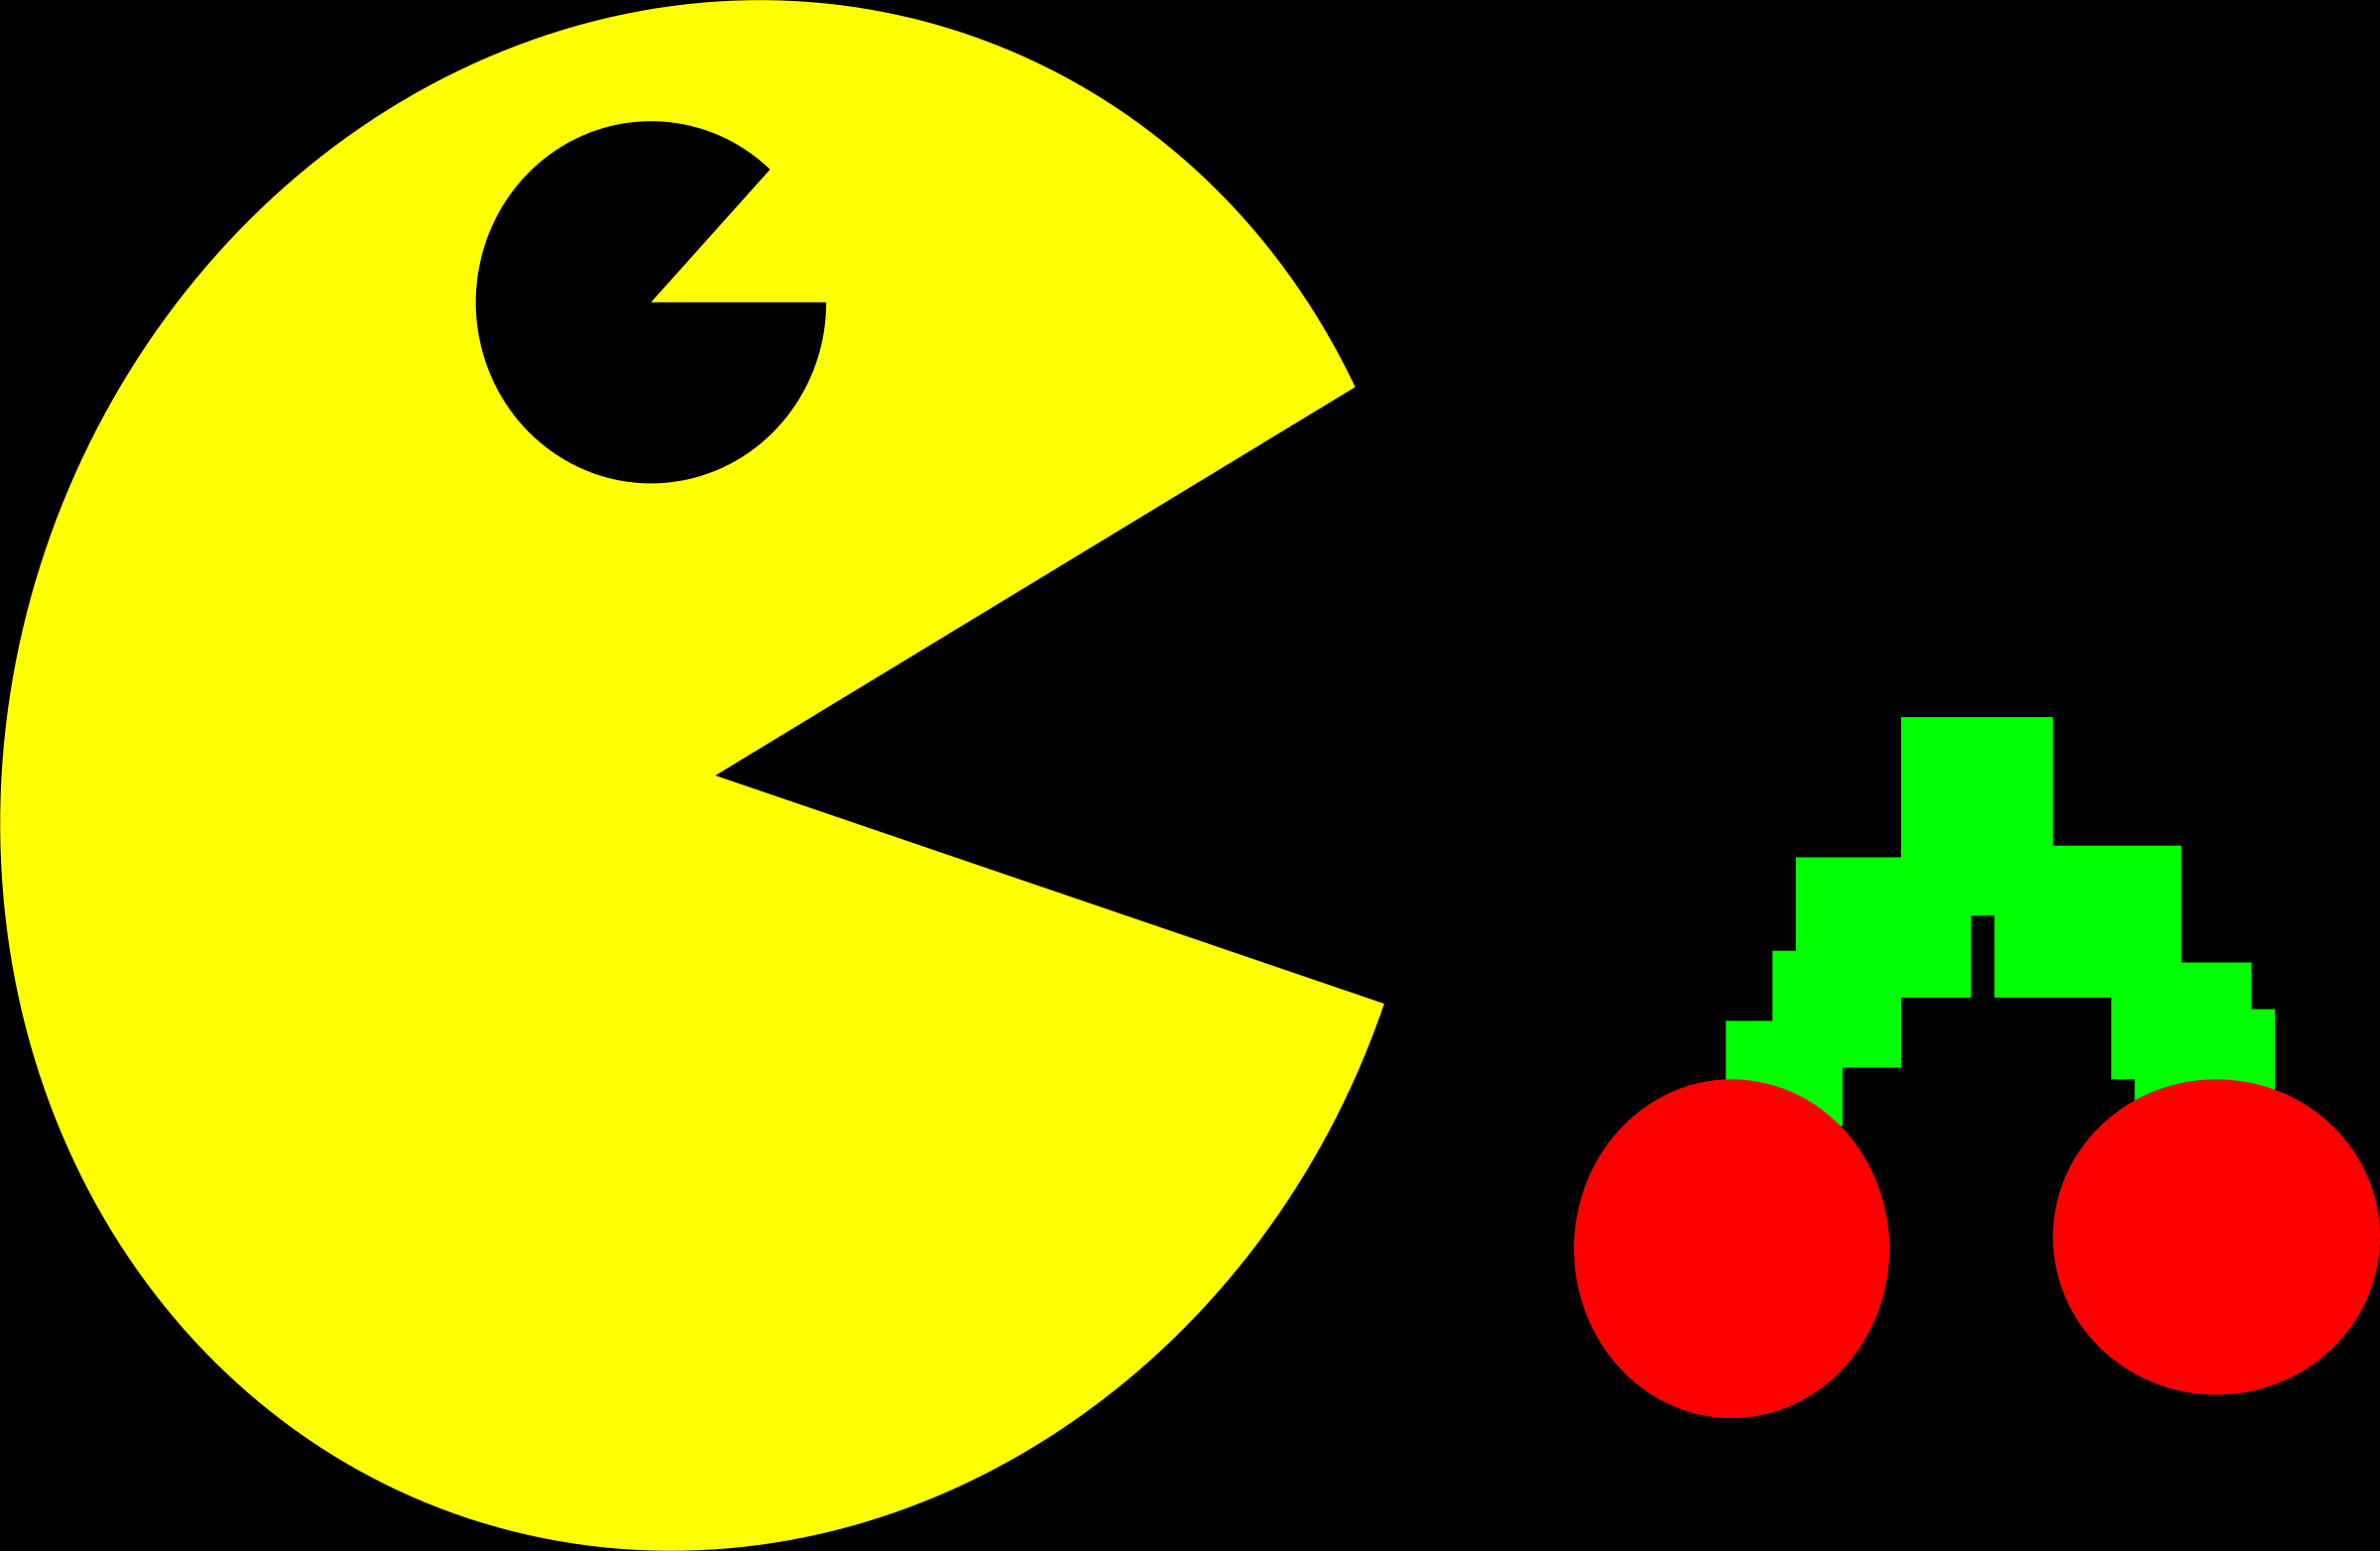 pacman by PeterBrough